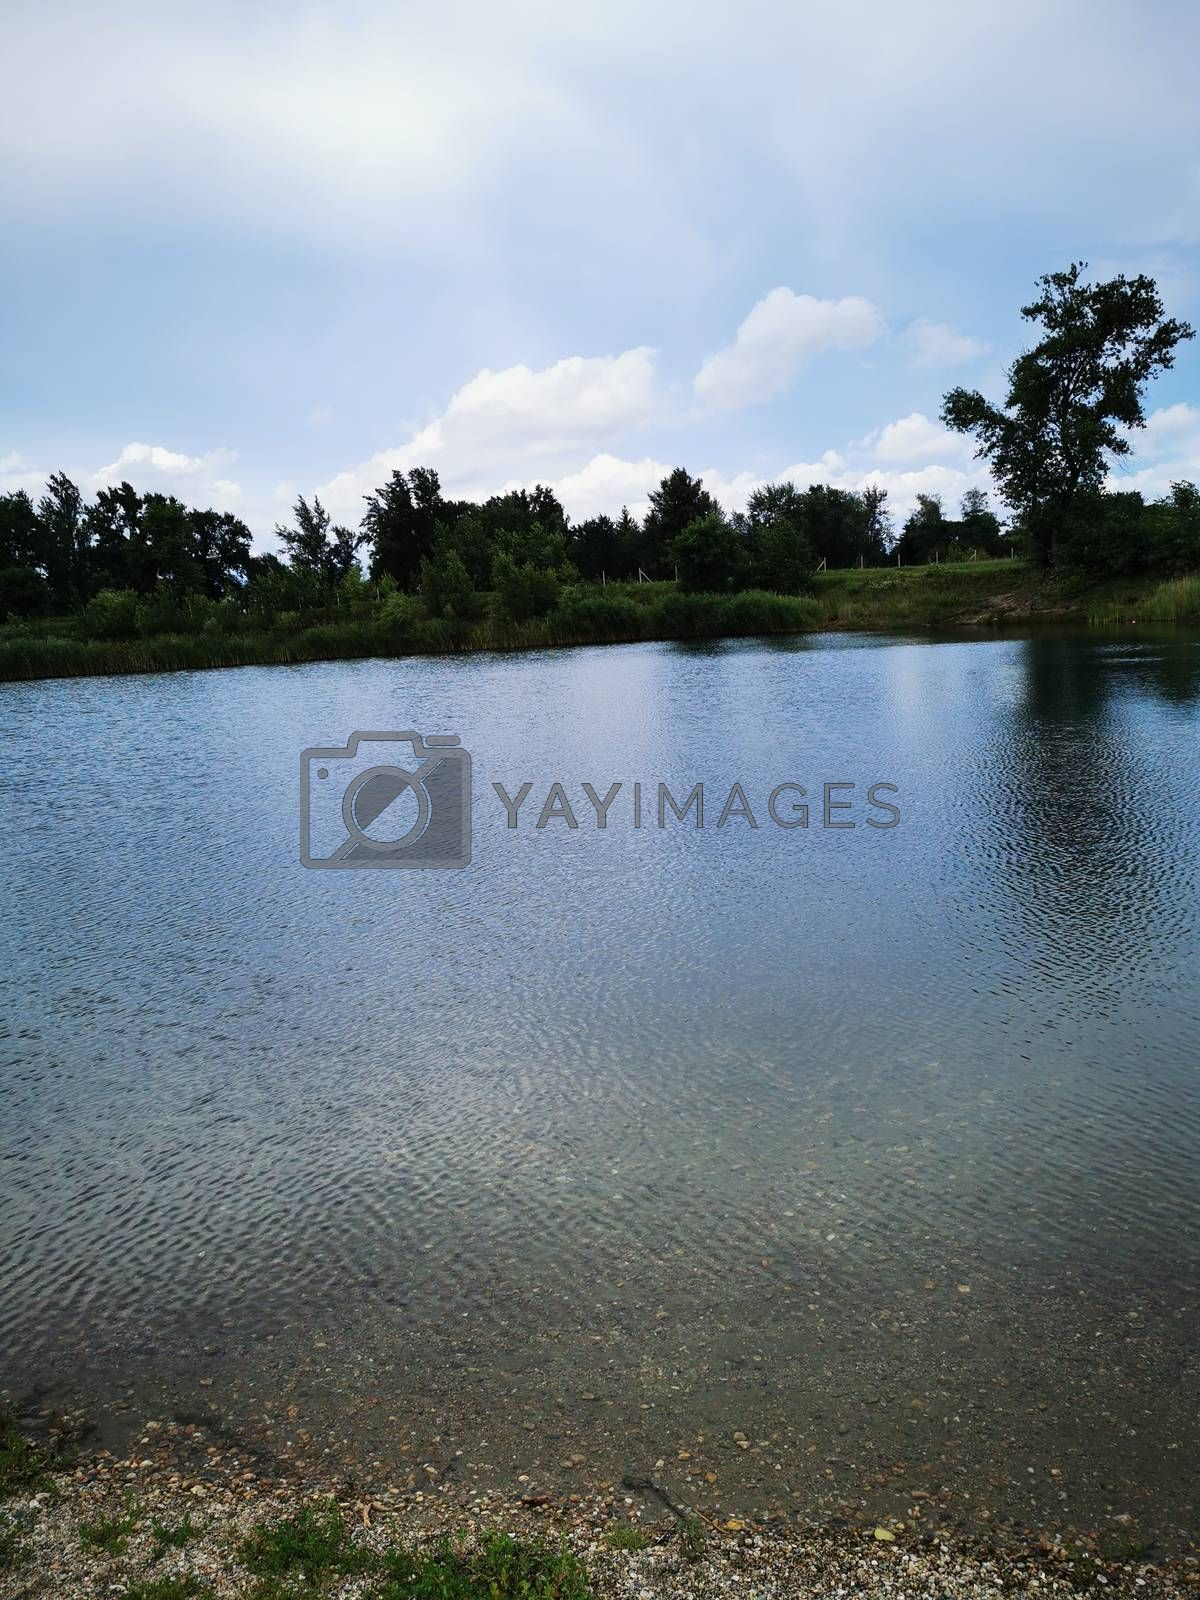 Royalty free image of A large body of water by balage941